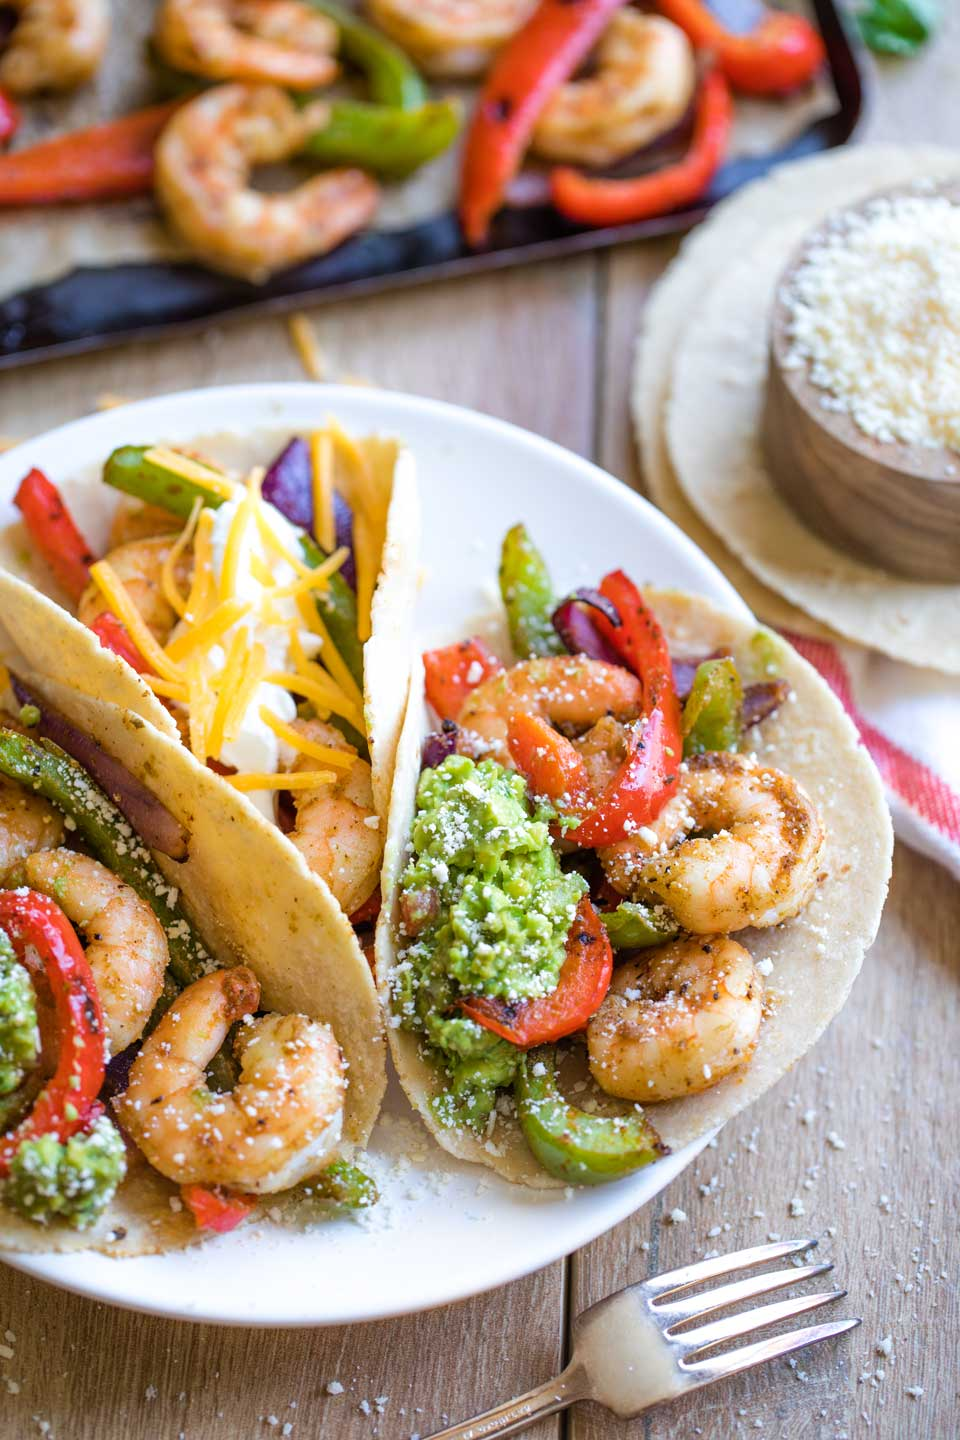 Three shrimp fajitas nestled together on a plate, showing different combinations of fajita toppings you could choose.